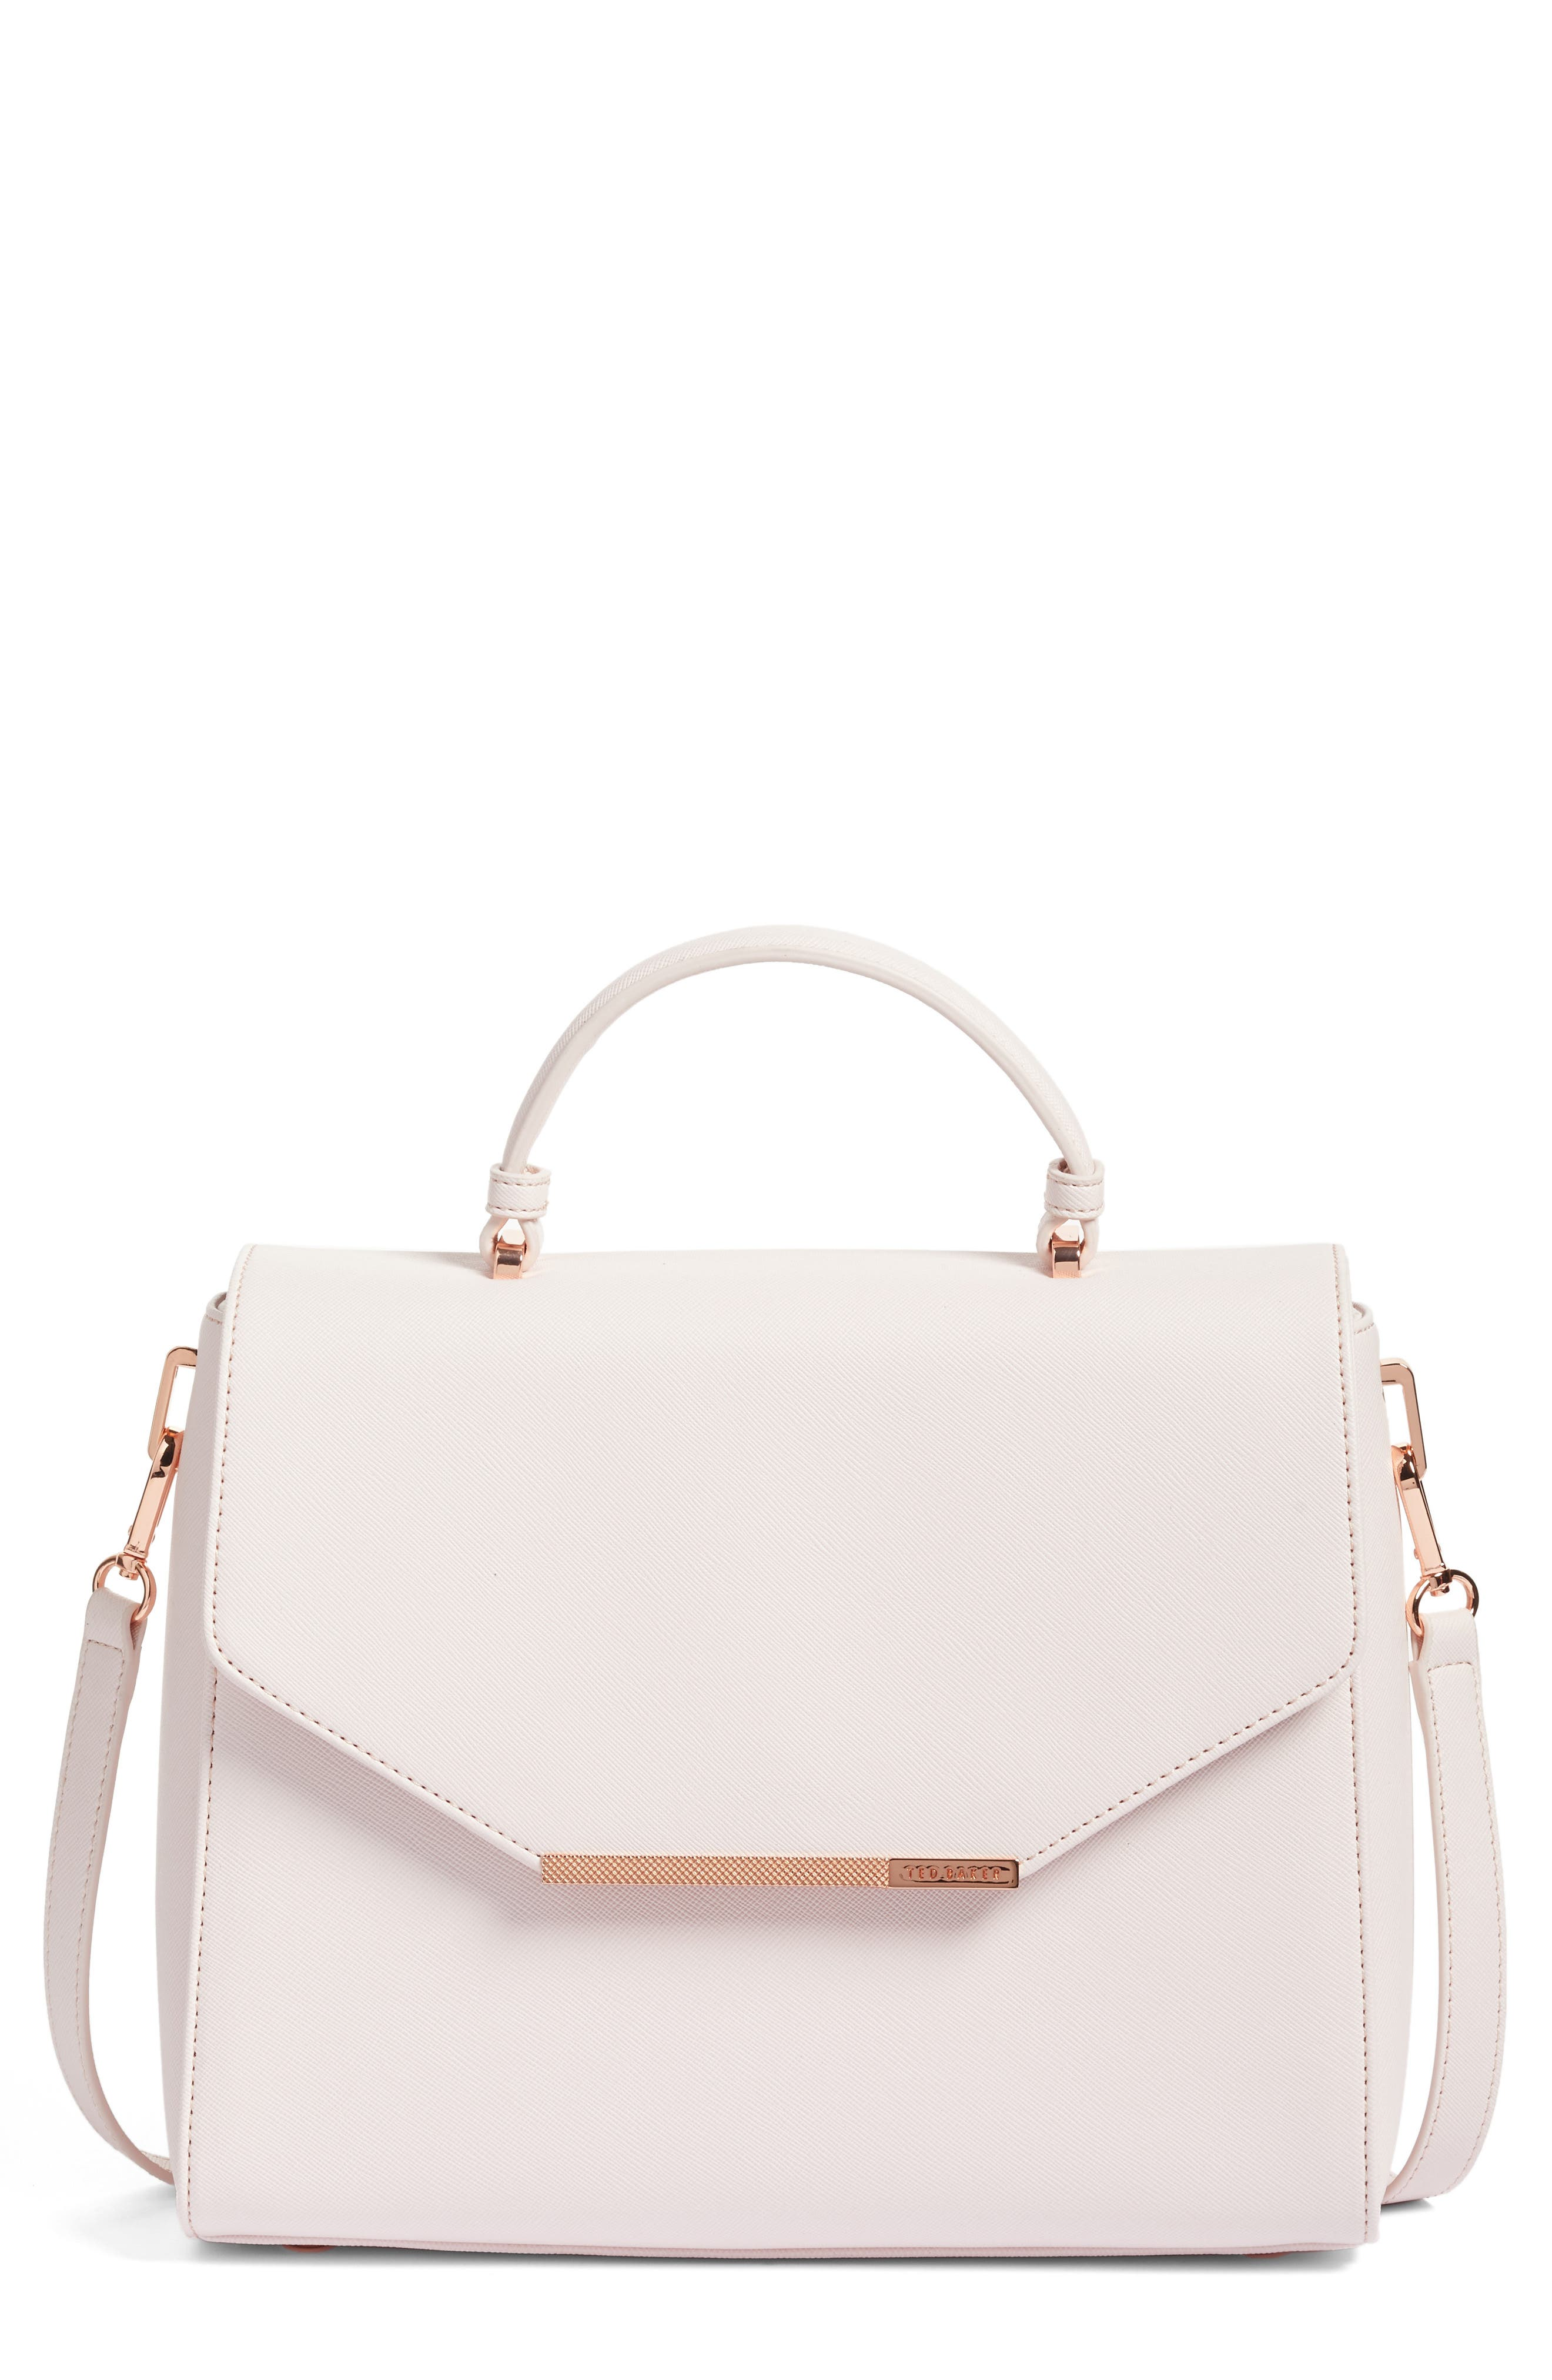 Alternate Image 1 Selected - Ted Baker London Large Dajana Faux Leather Top Handle Satchel (Nordstrom Exclusive)